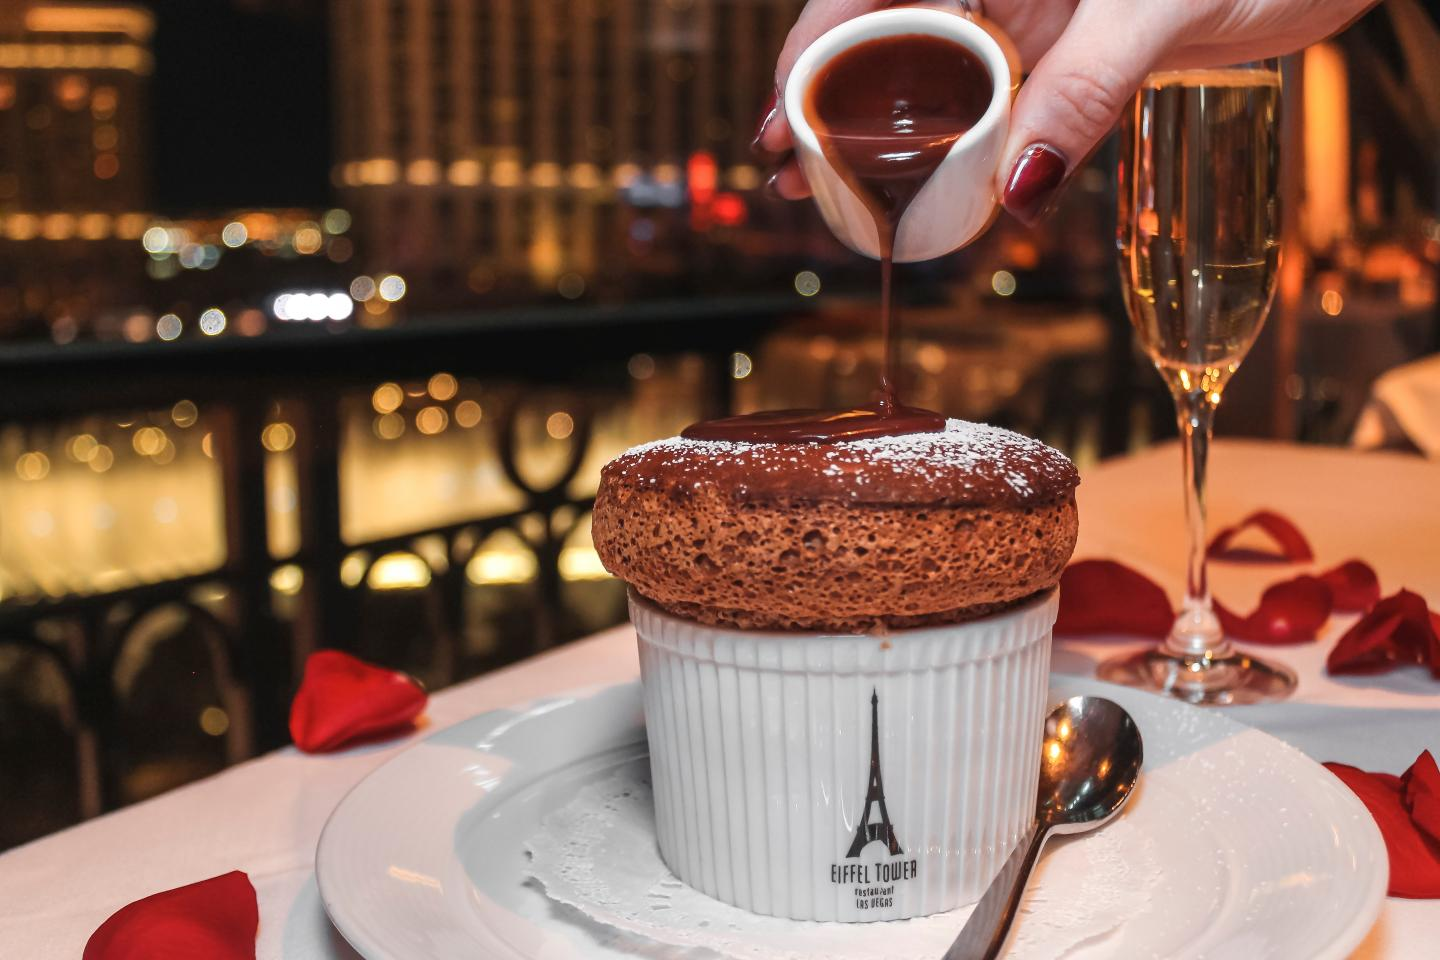 Eiffel Tower Soufflé Chocolate